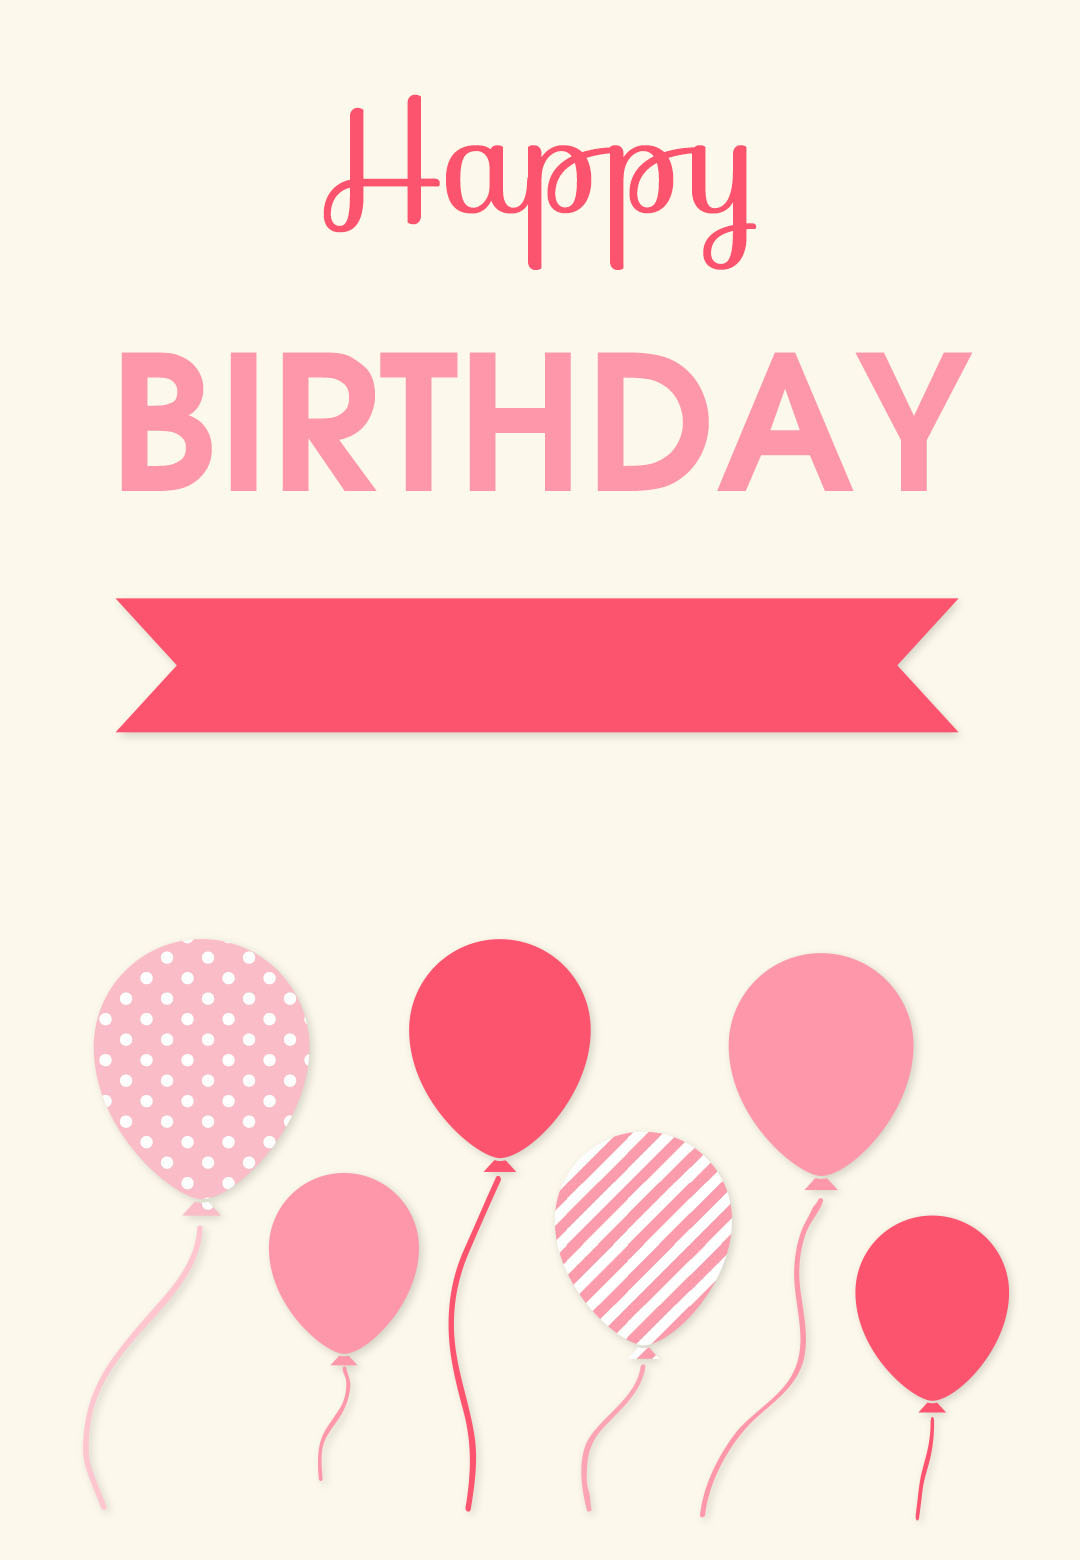 birthday card designs free printable ; d42a1906be7d24c9b0fd5ae4556abba1